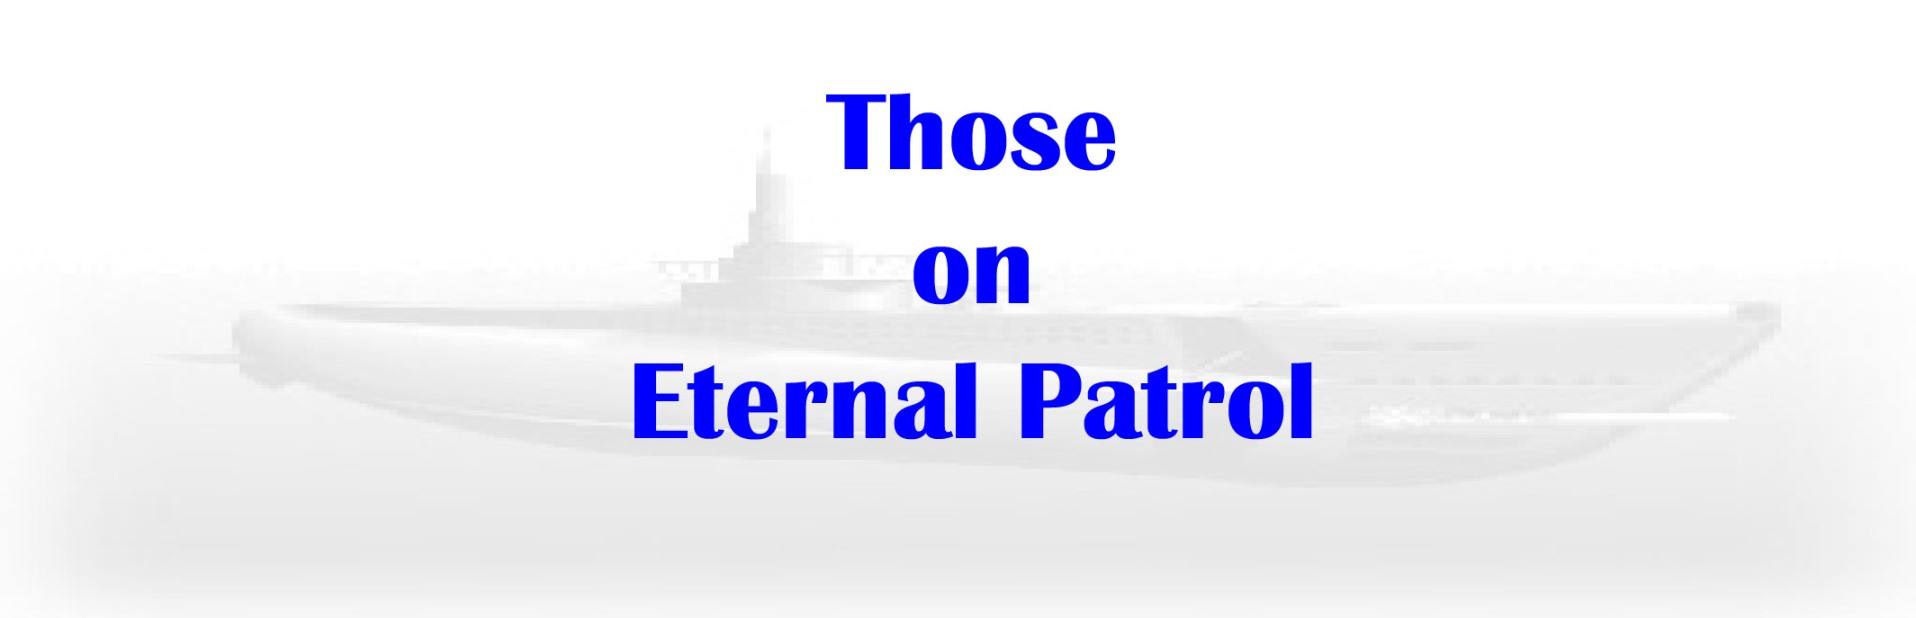 Those on Eternal Patrol